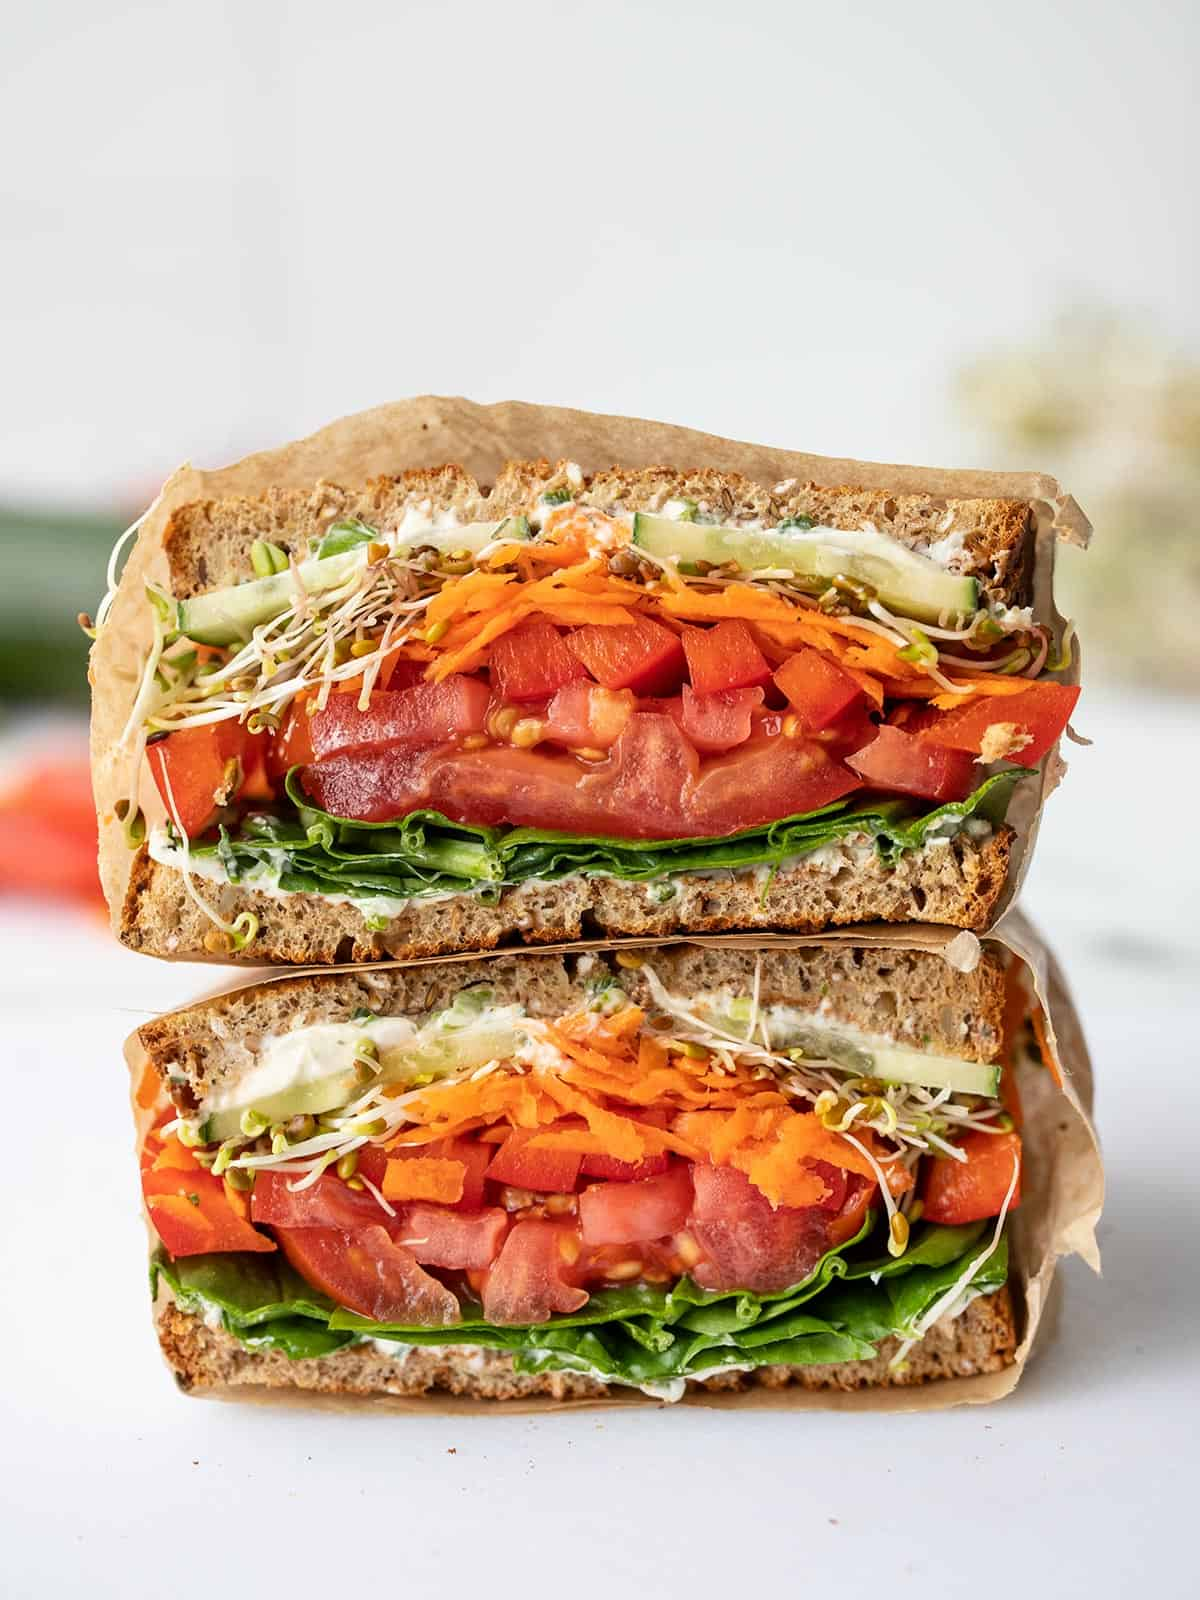 An ultimate veggie sandwich cut in half and stacked, cut sides facing the camera